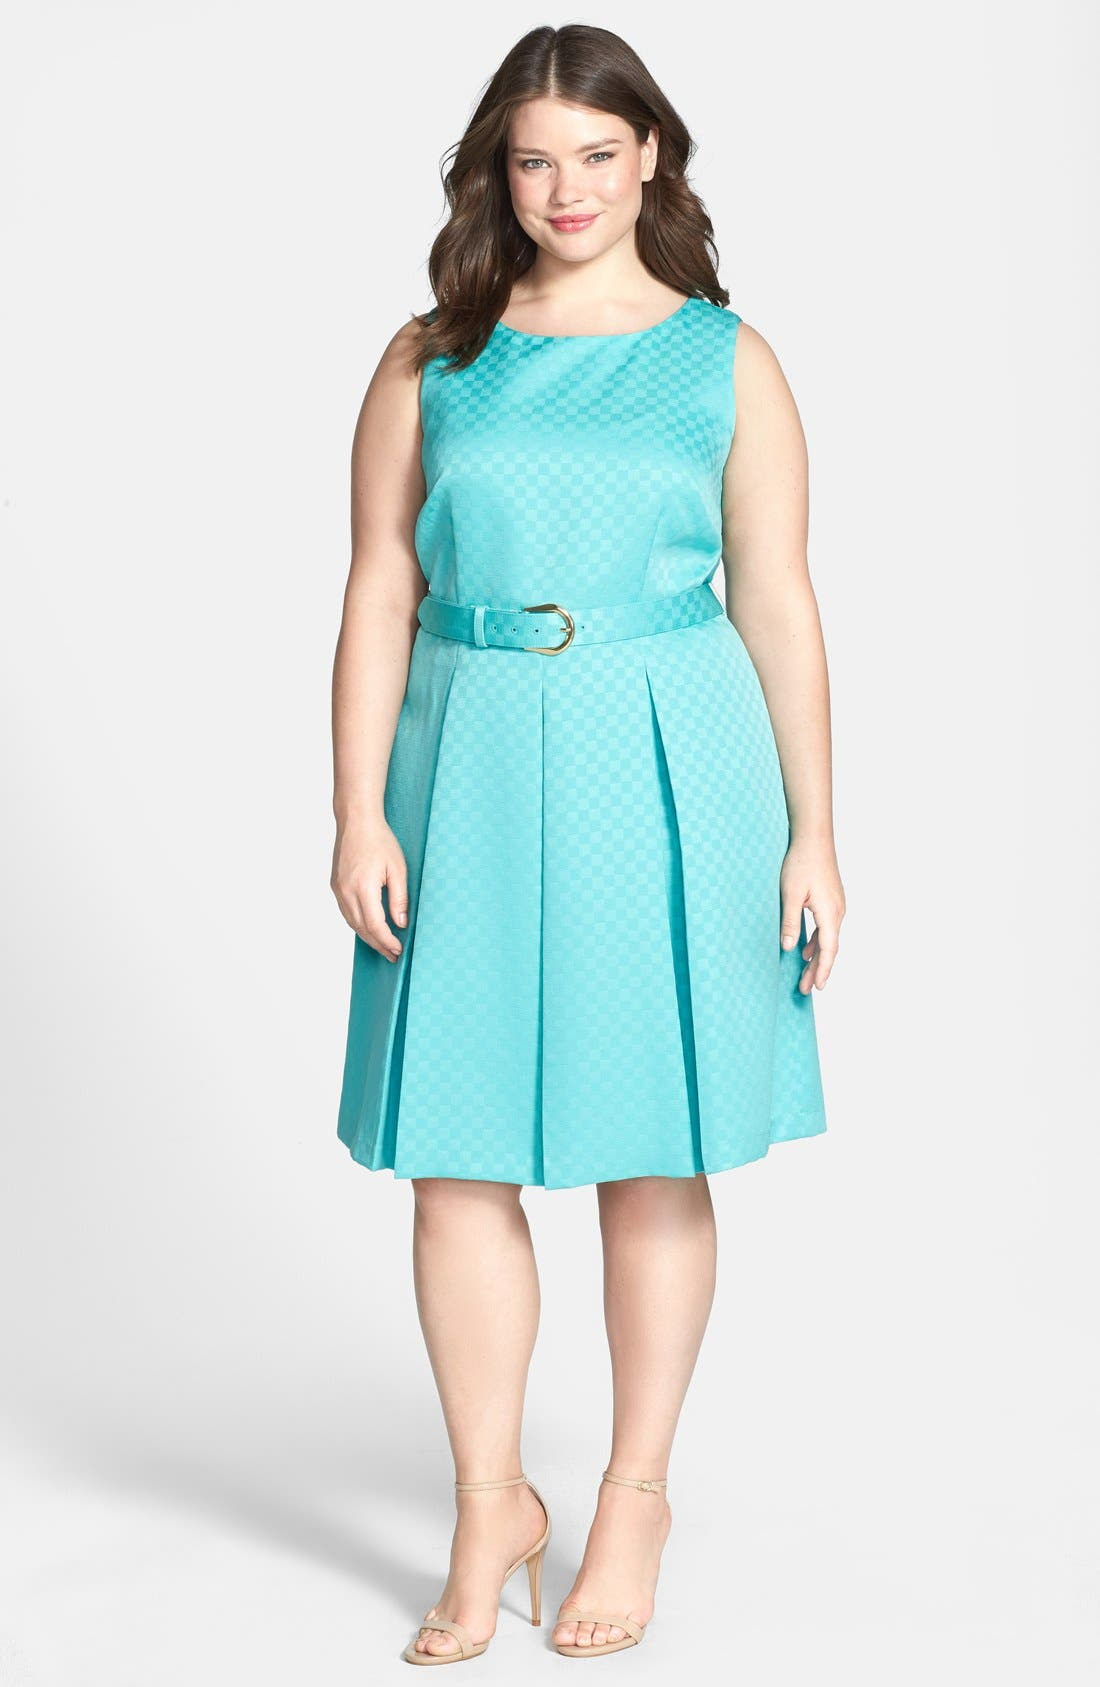 Alternate Image 1 Selected - Tahari Belted Jacquard Pleat Fit & Flare Dress (Plus Size)